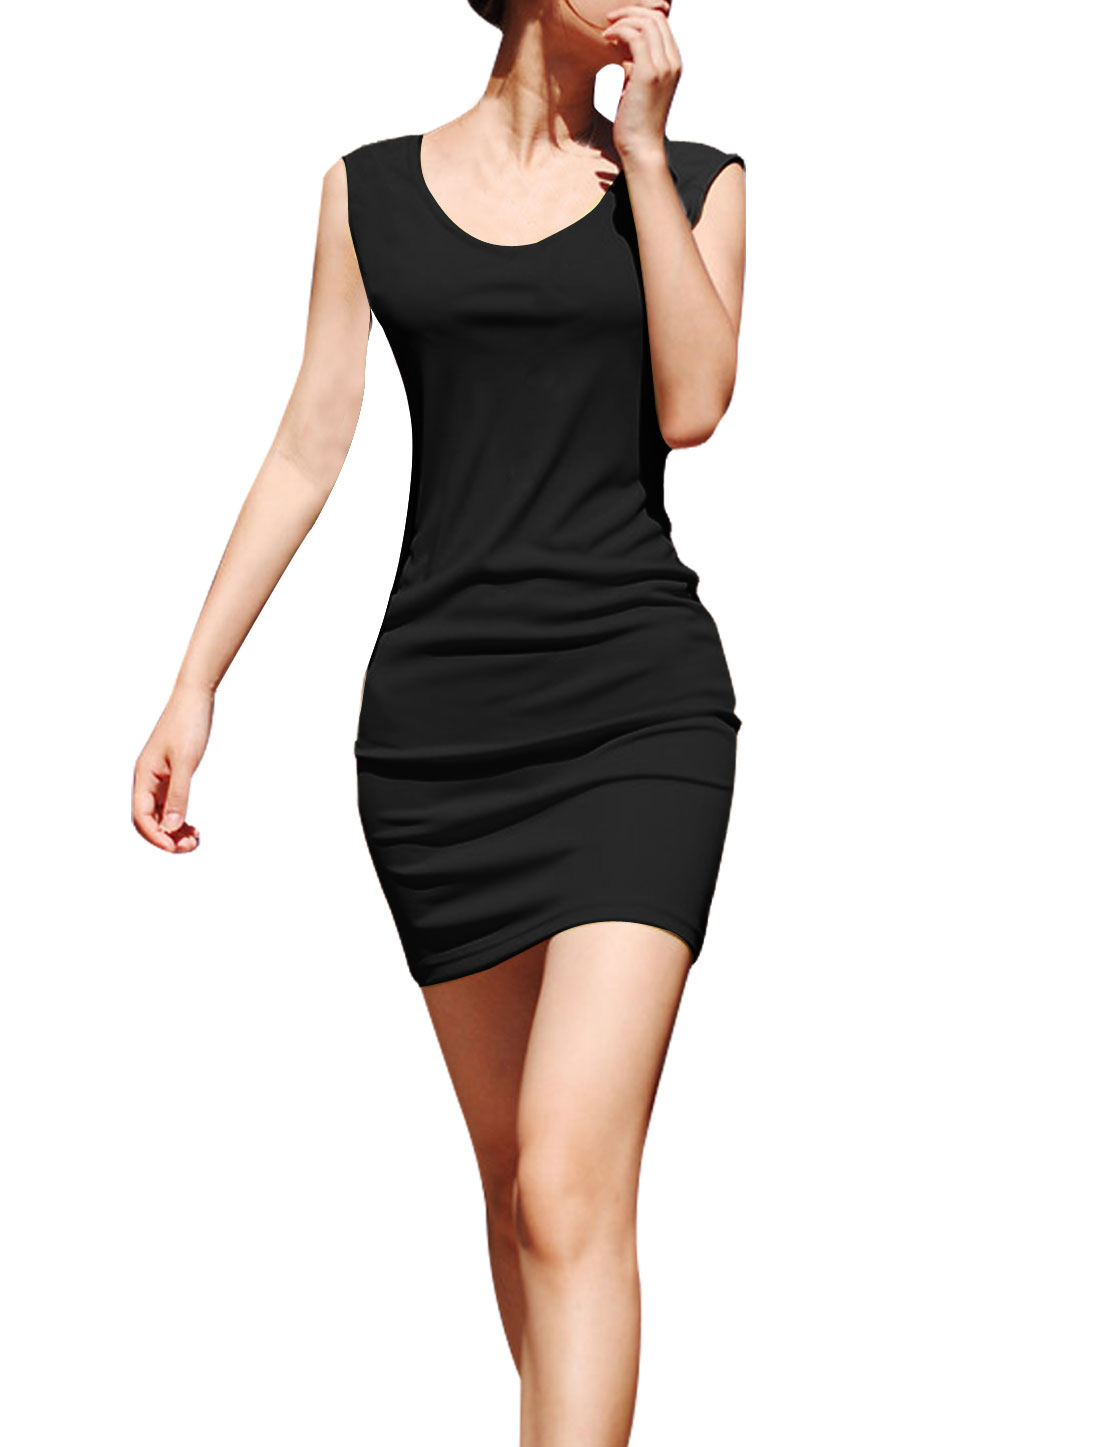 Lady NEW Style Pure Black V-Neck Slim Fit Sexy Mini Dress S